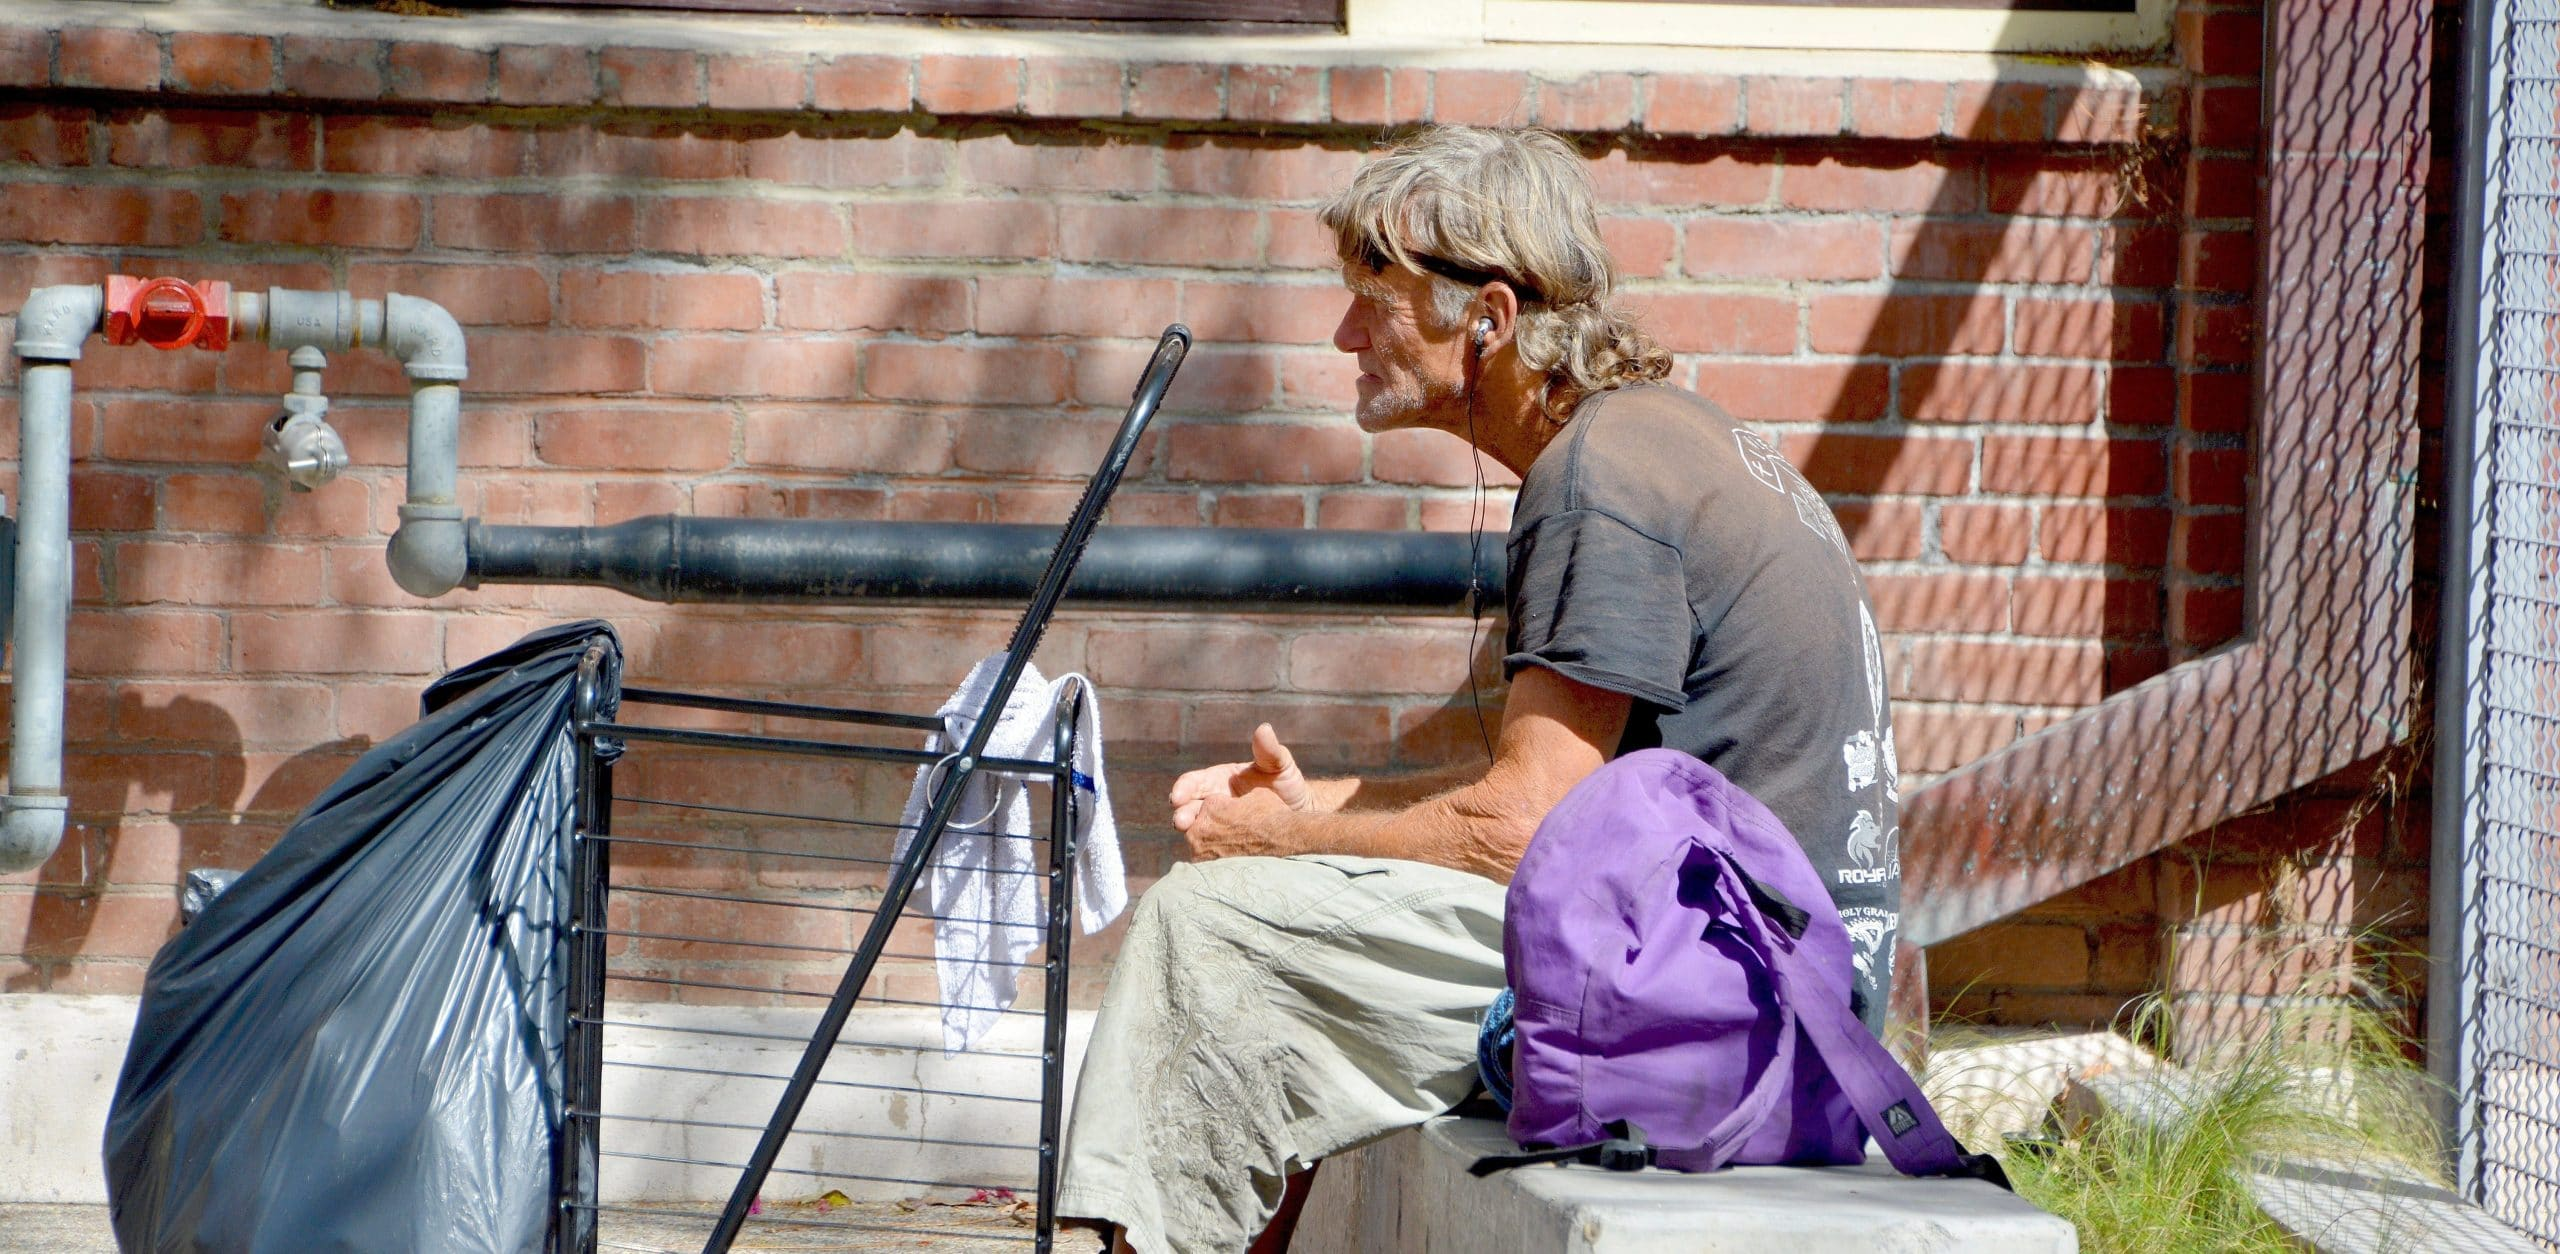 Homeless man sitting in a hot summer day